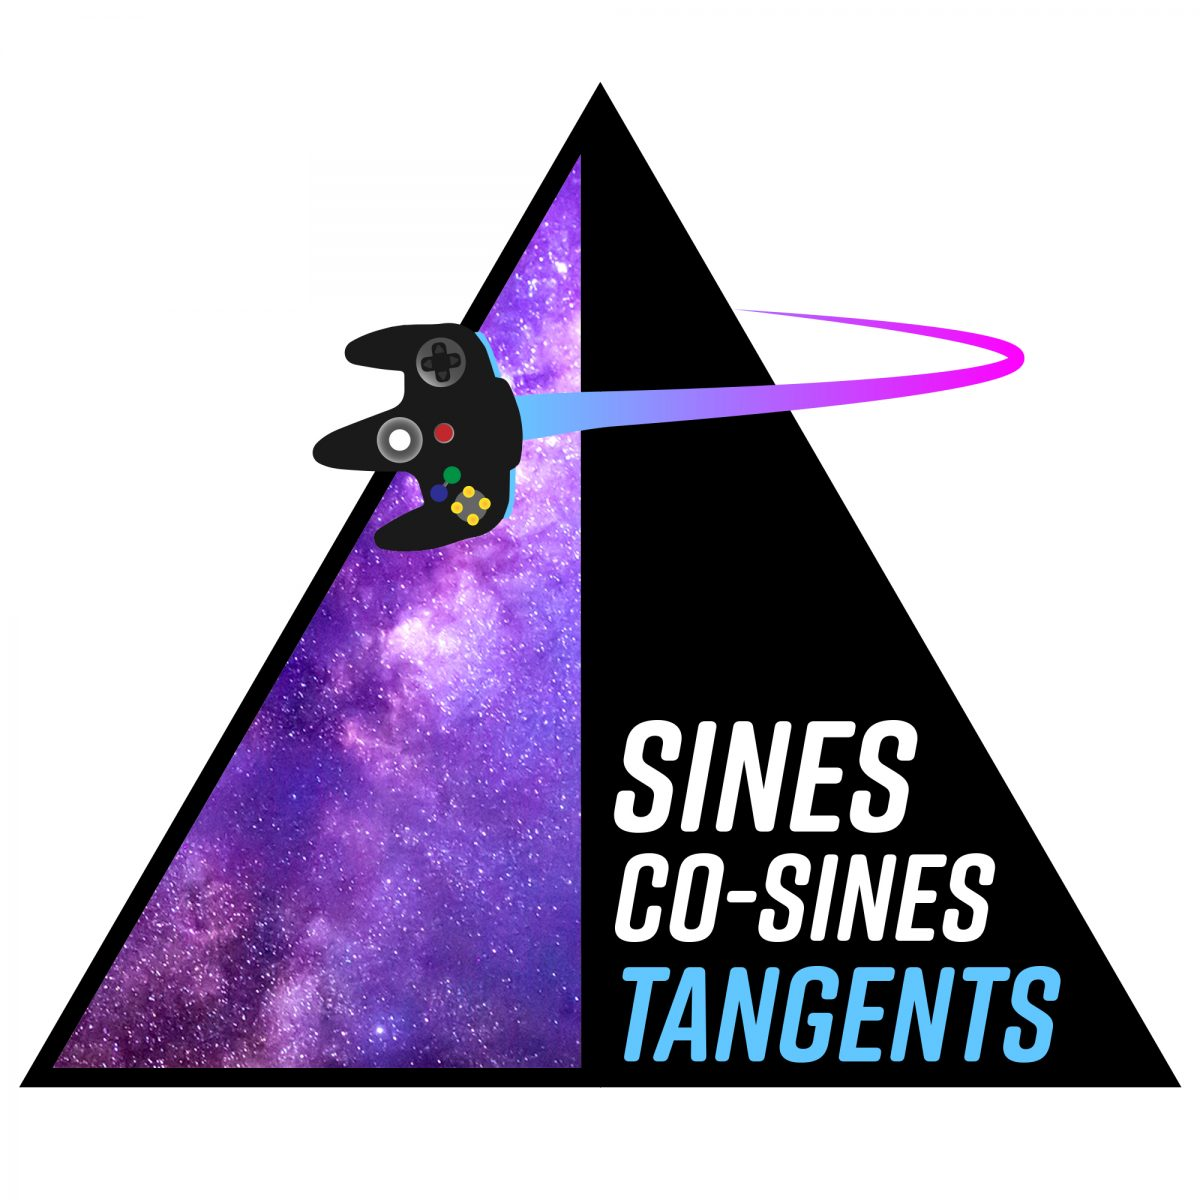 Of Tangents and Sines